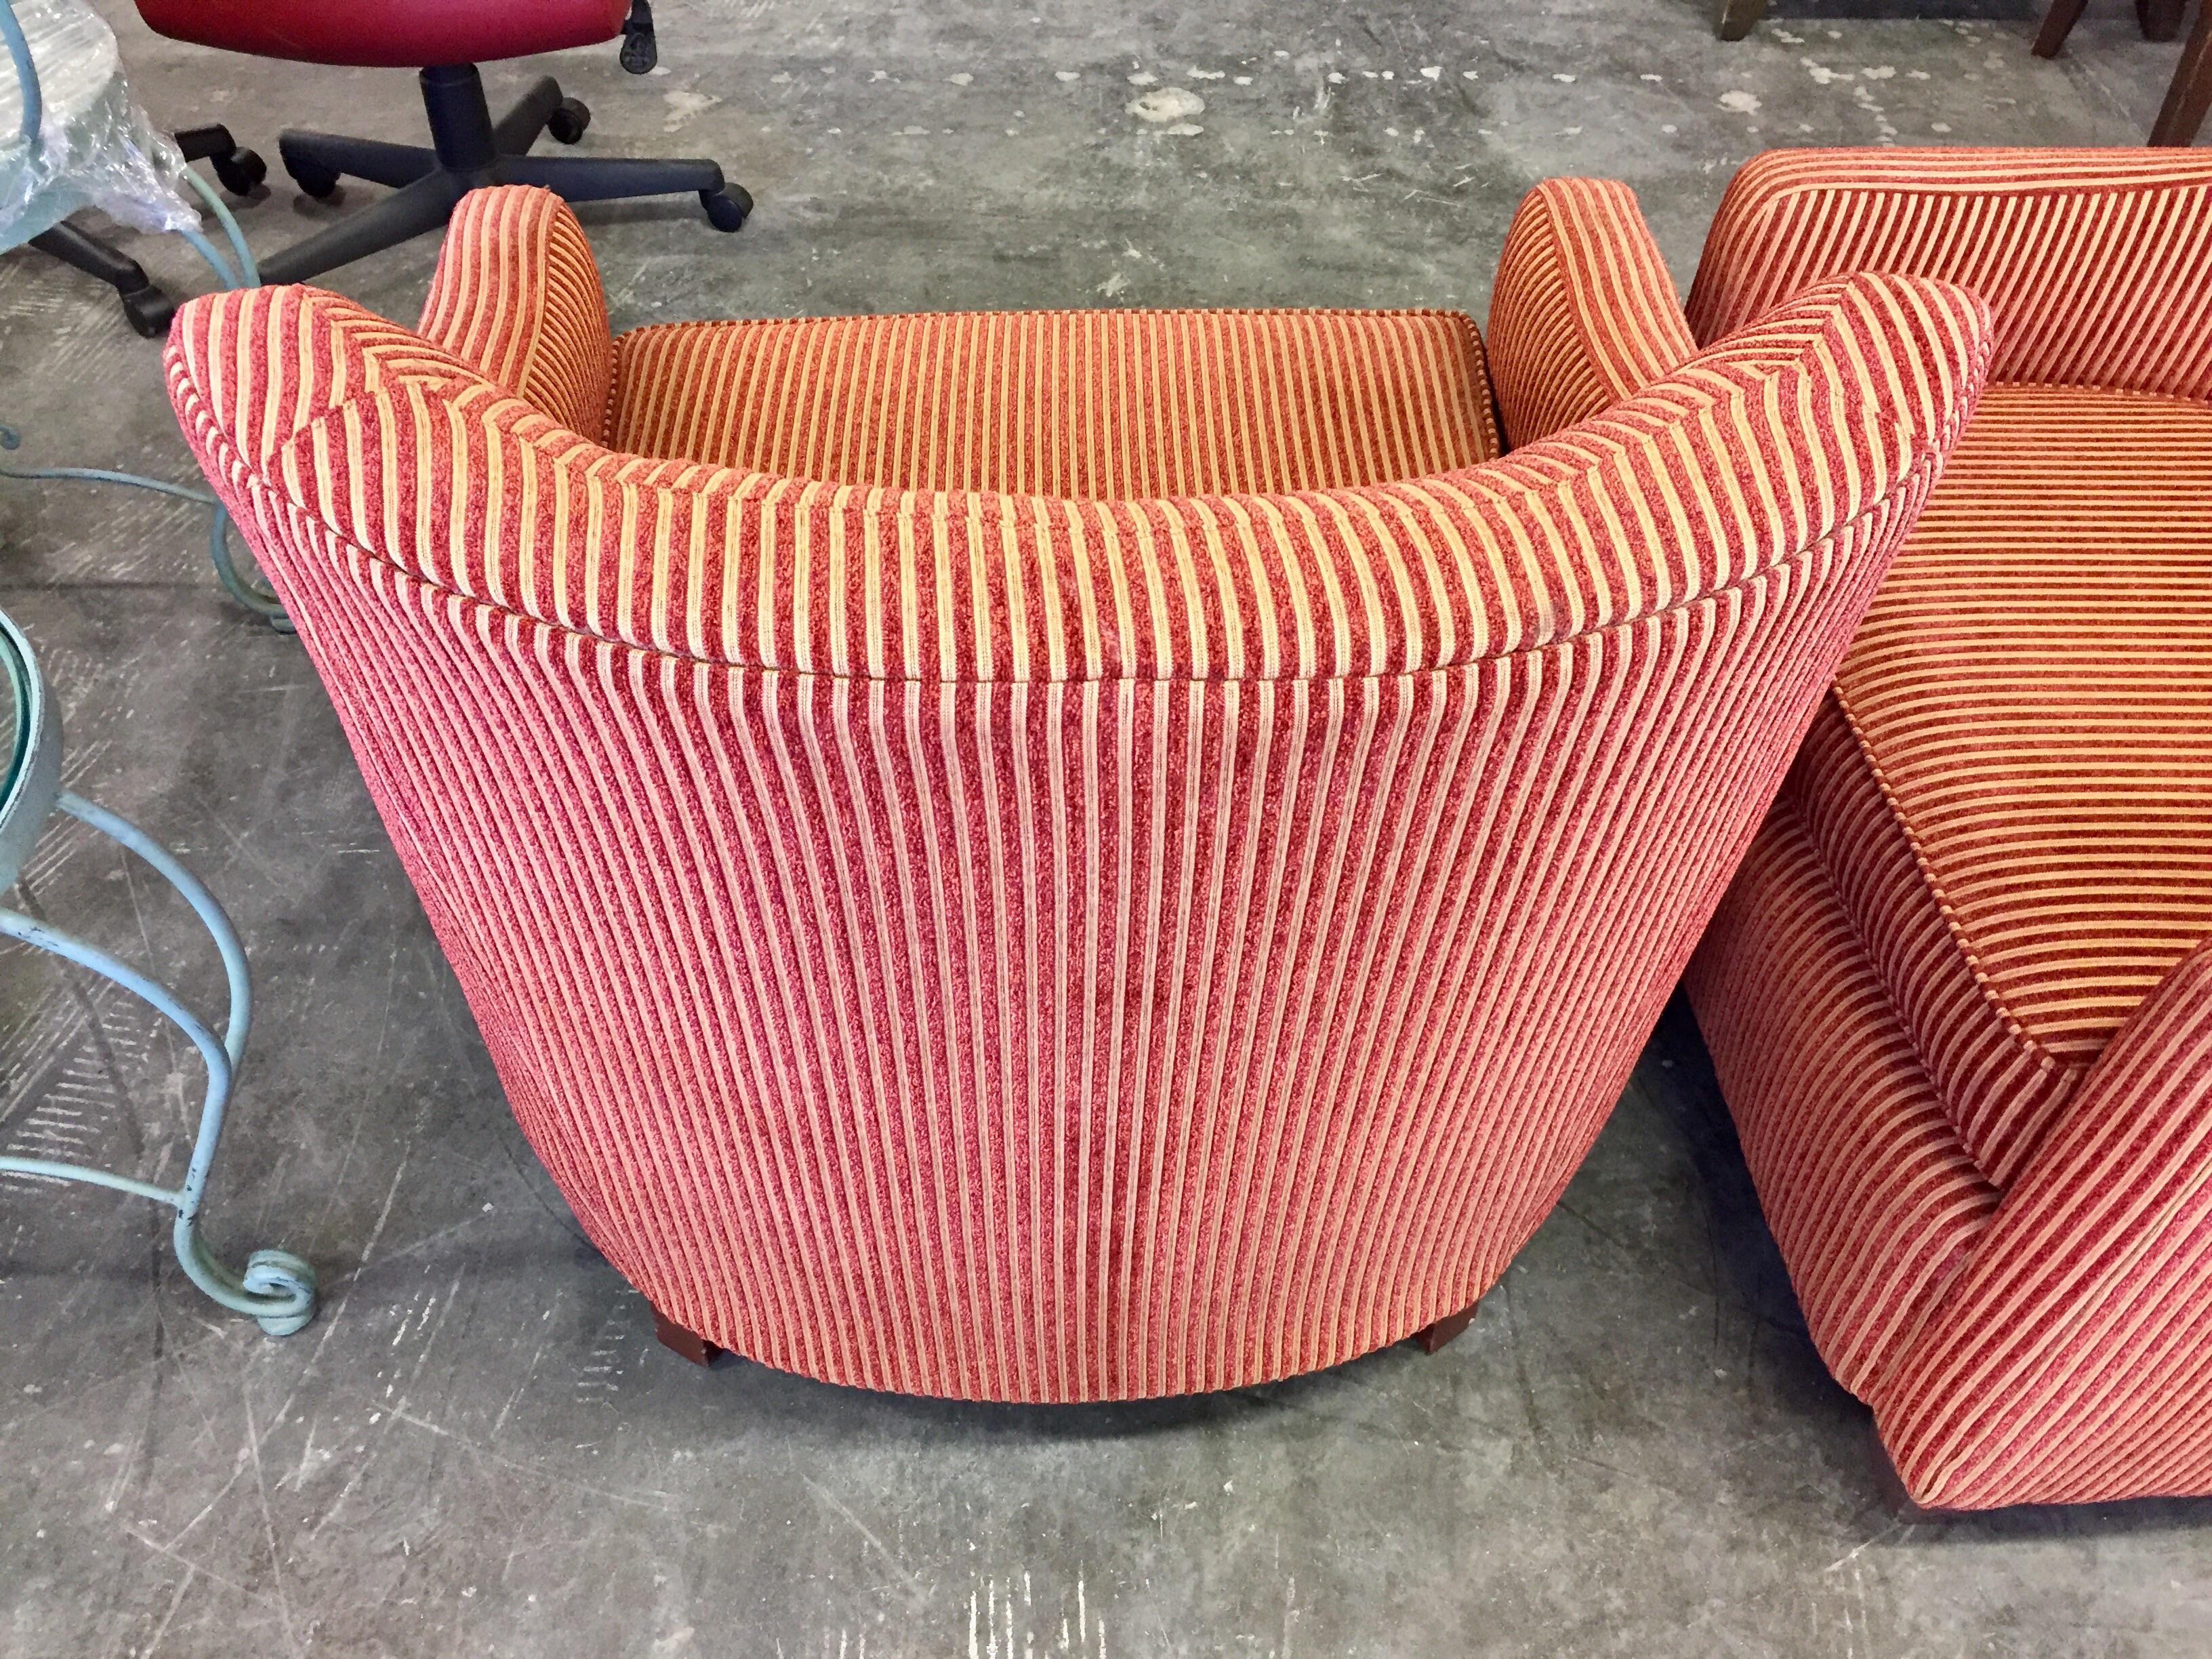 Charter Furniture Co. Wale Red U0026 Gold Corduroy Armchair   Image 3 ...